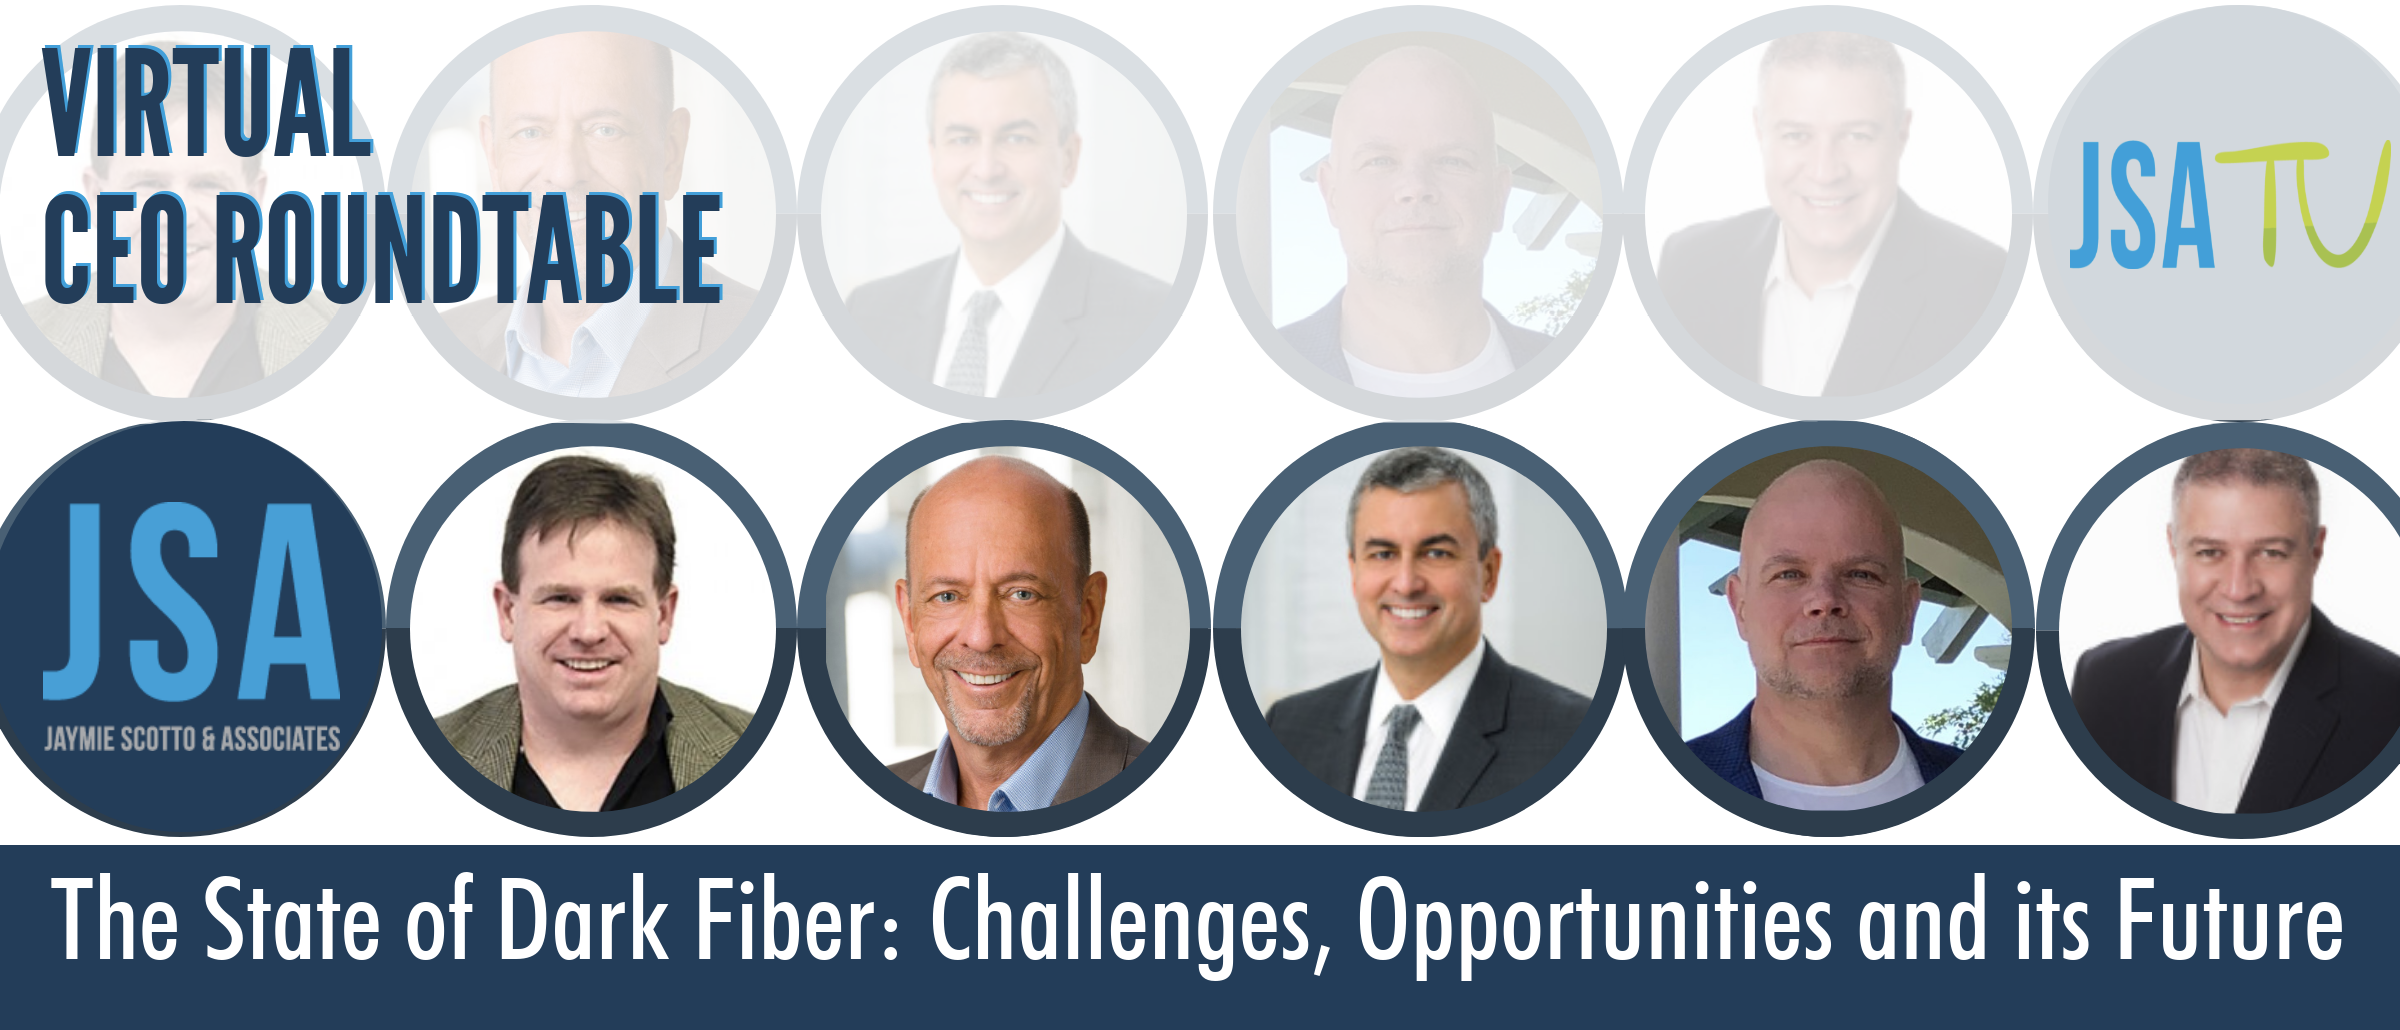 Don't Miss JSA's Virtual CEO Roundtable on The State of Dark Fiber